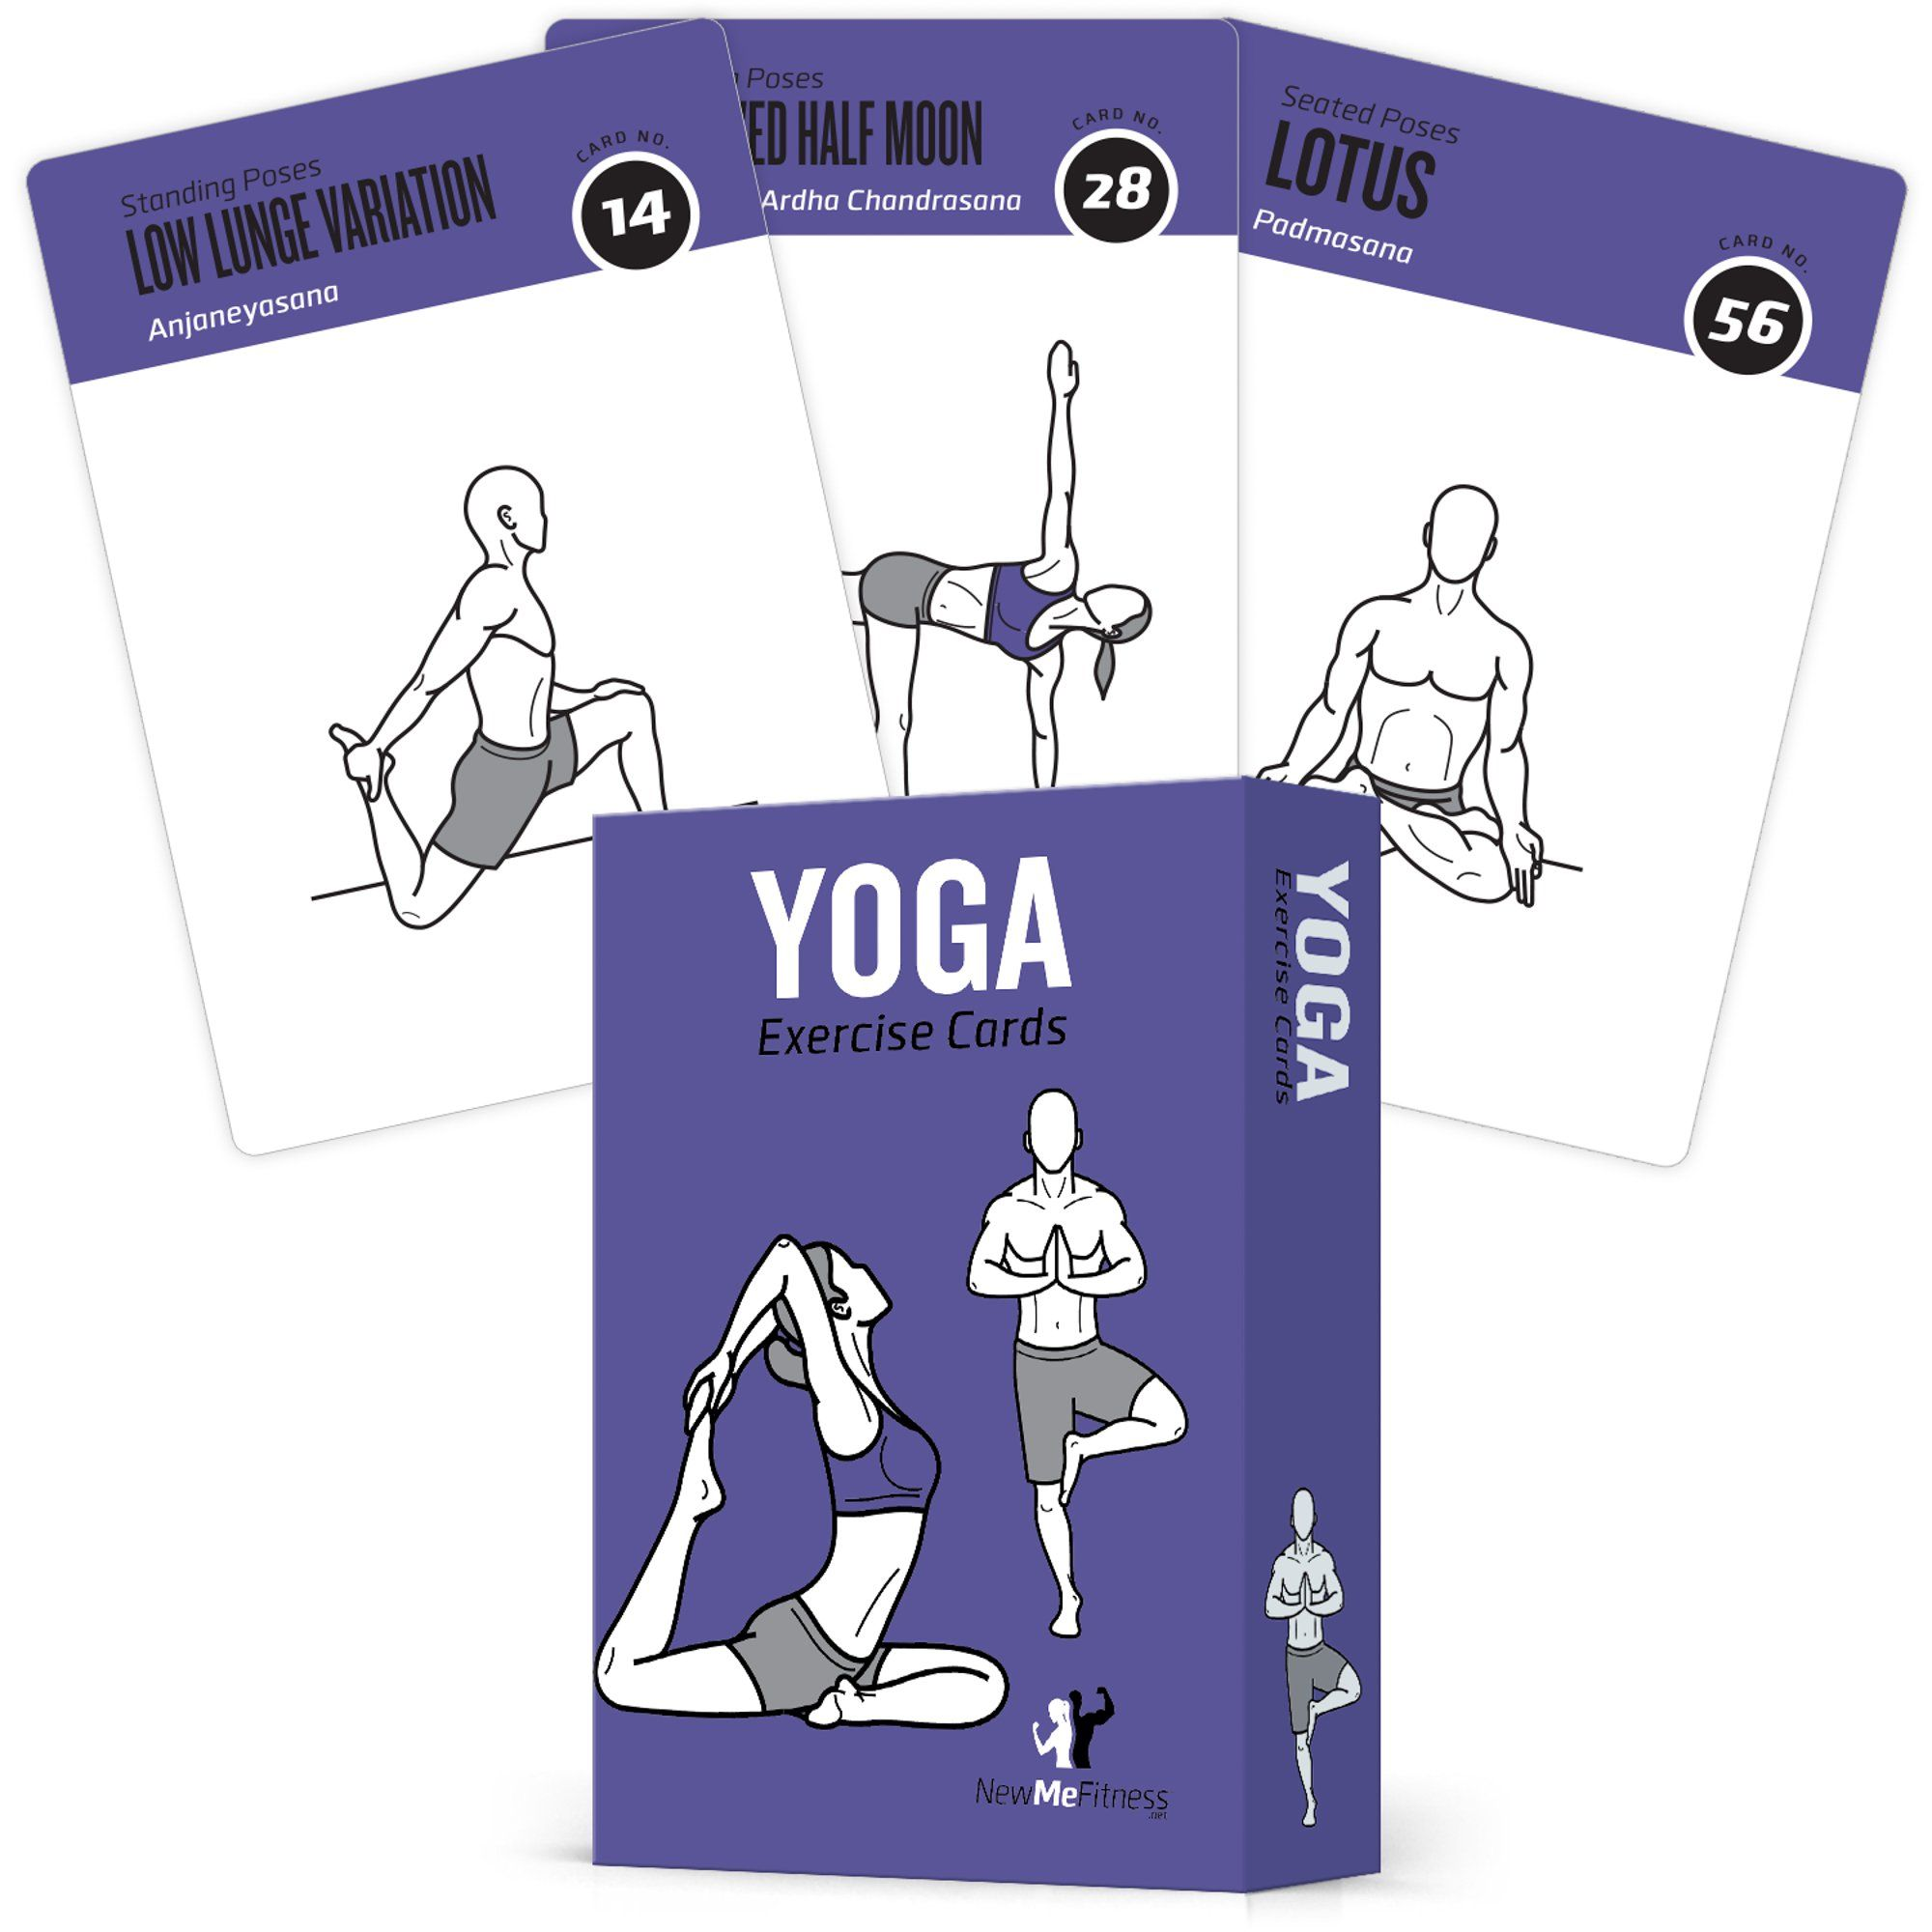 Yoga Cards Pose Sequence Flow In 2020 Card Workout Yoga Cards Yoga Fitness